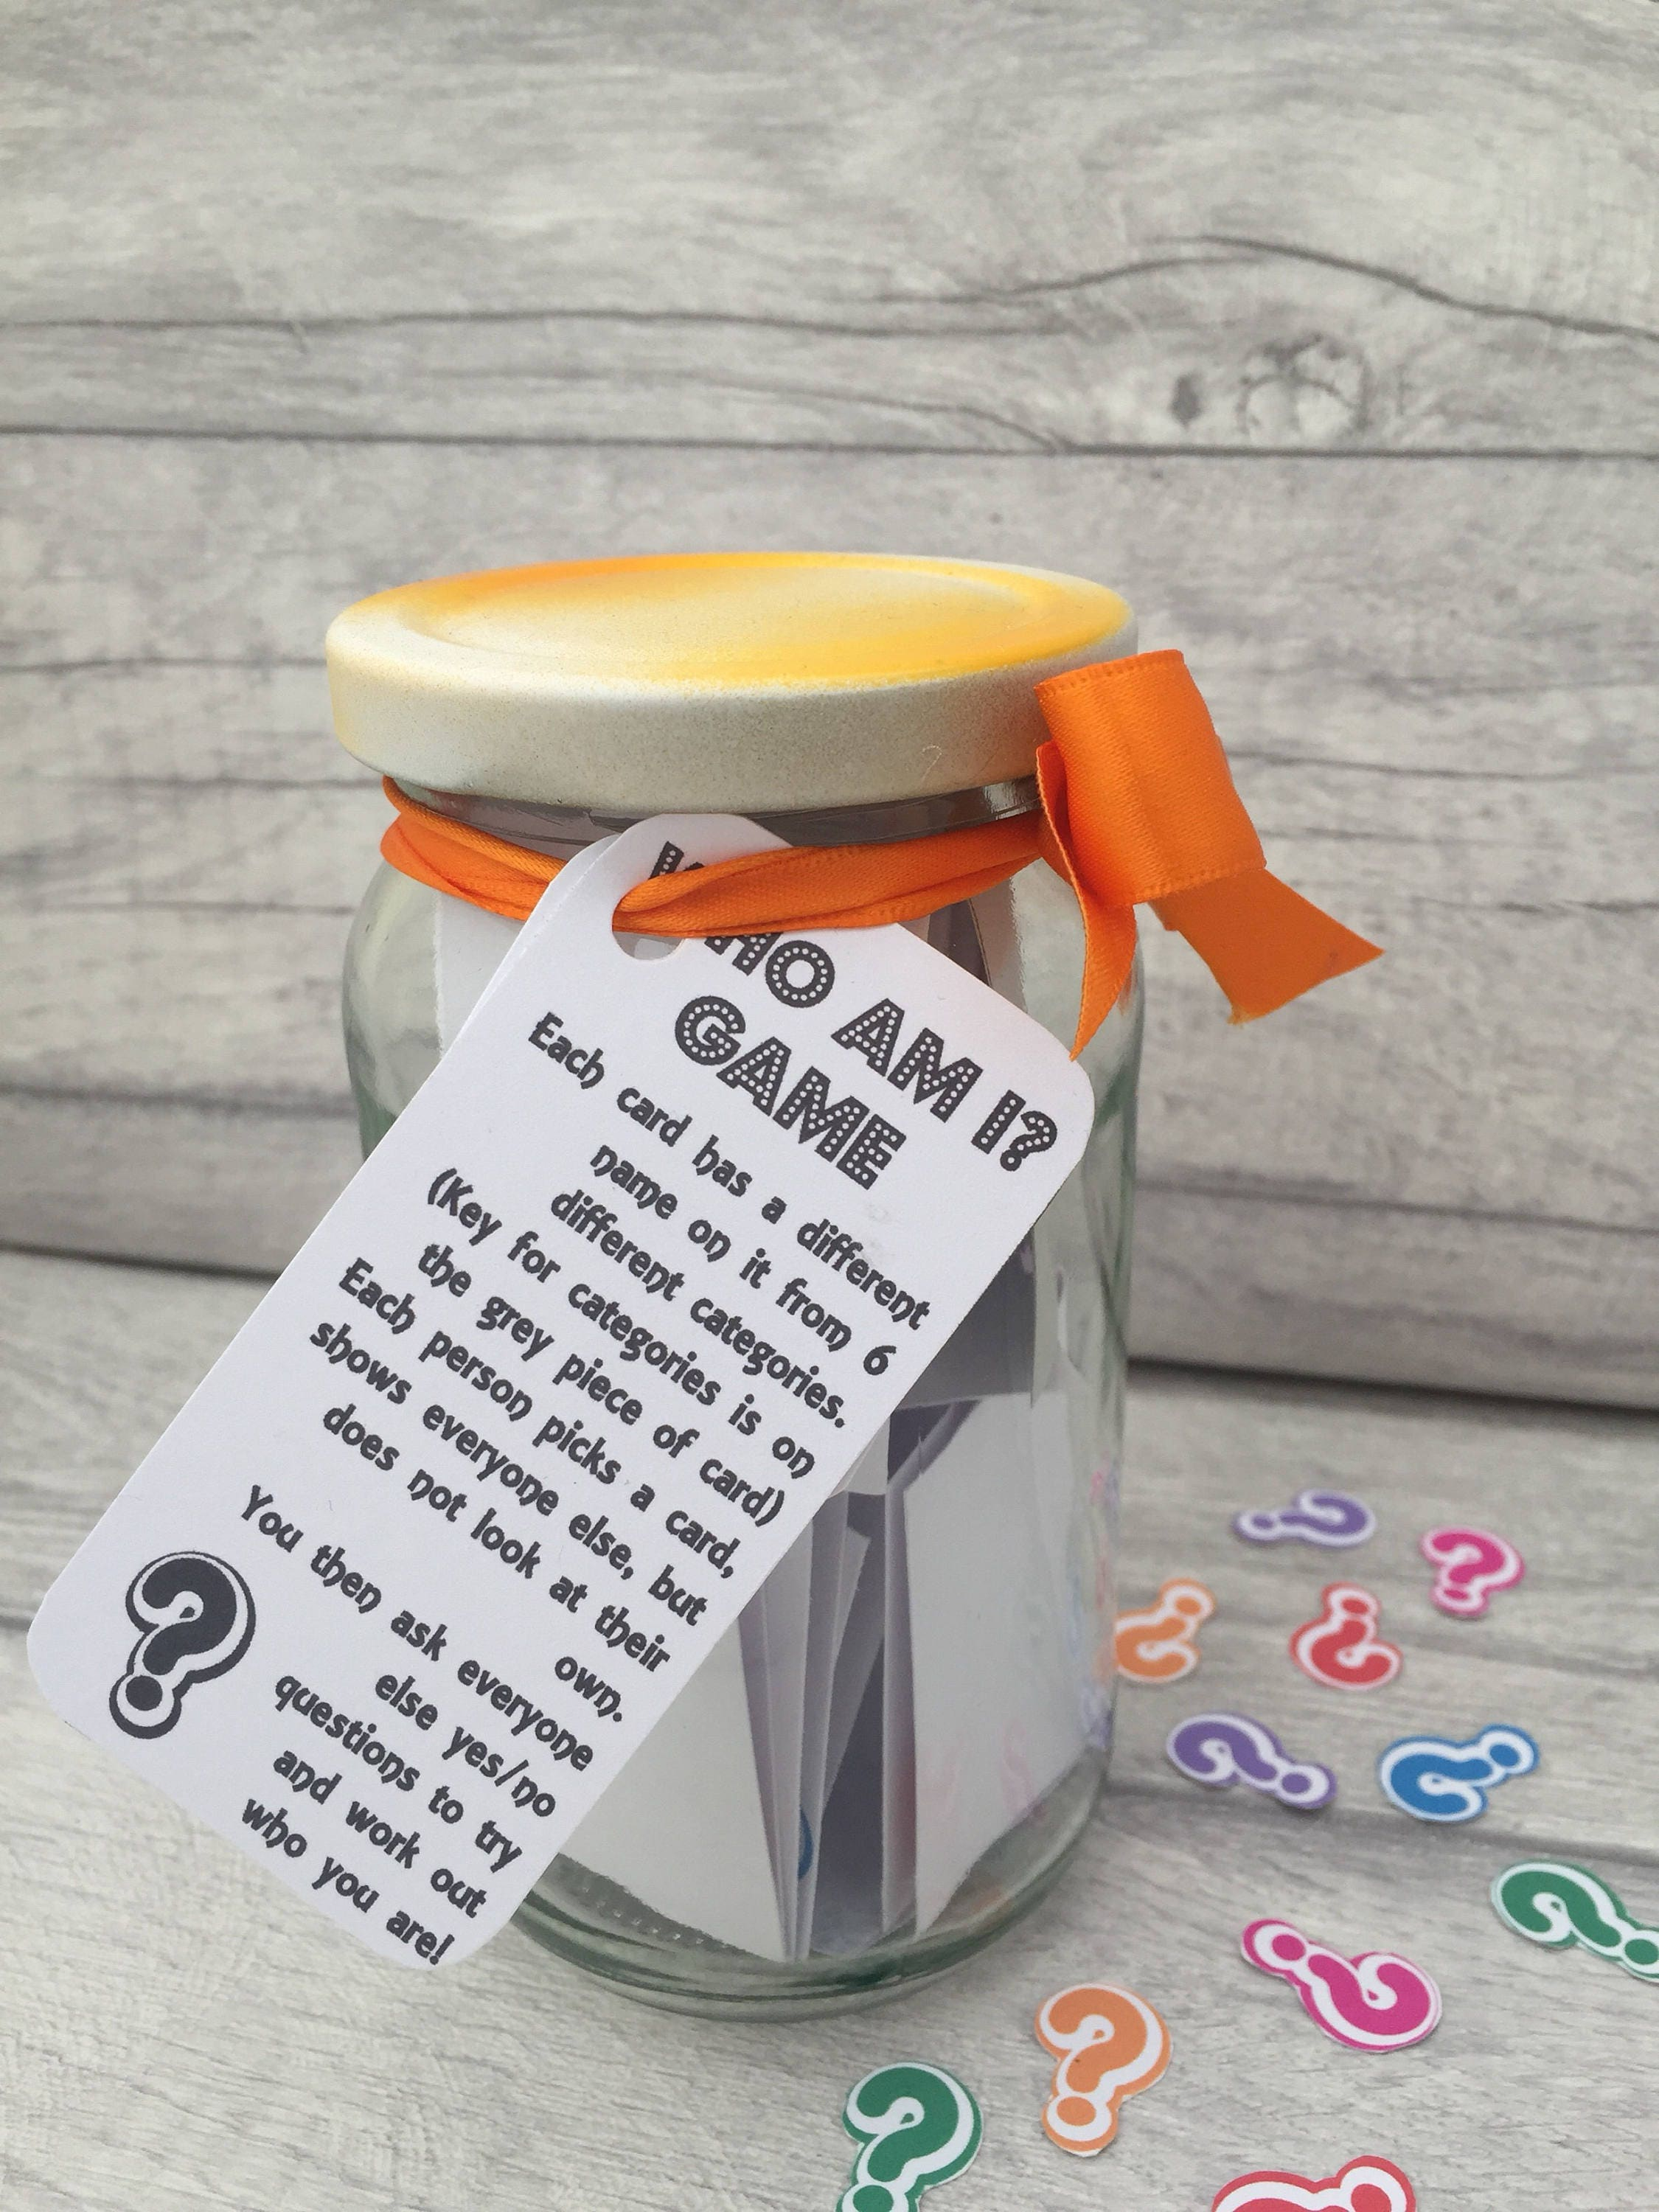 Who Am I  Jam Packed Jar  Childrens Games  Family Games  Childrens Activities  Family Activities  Holiday Games